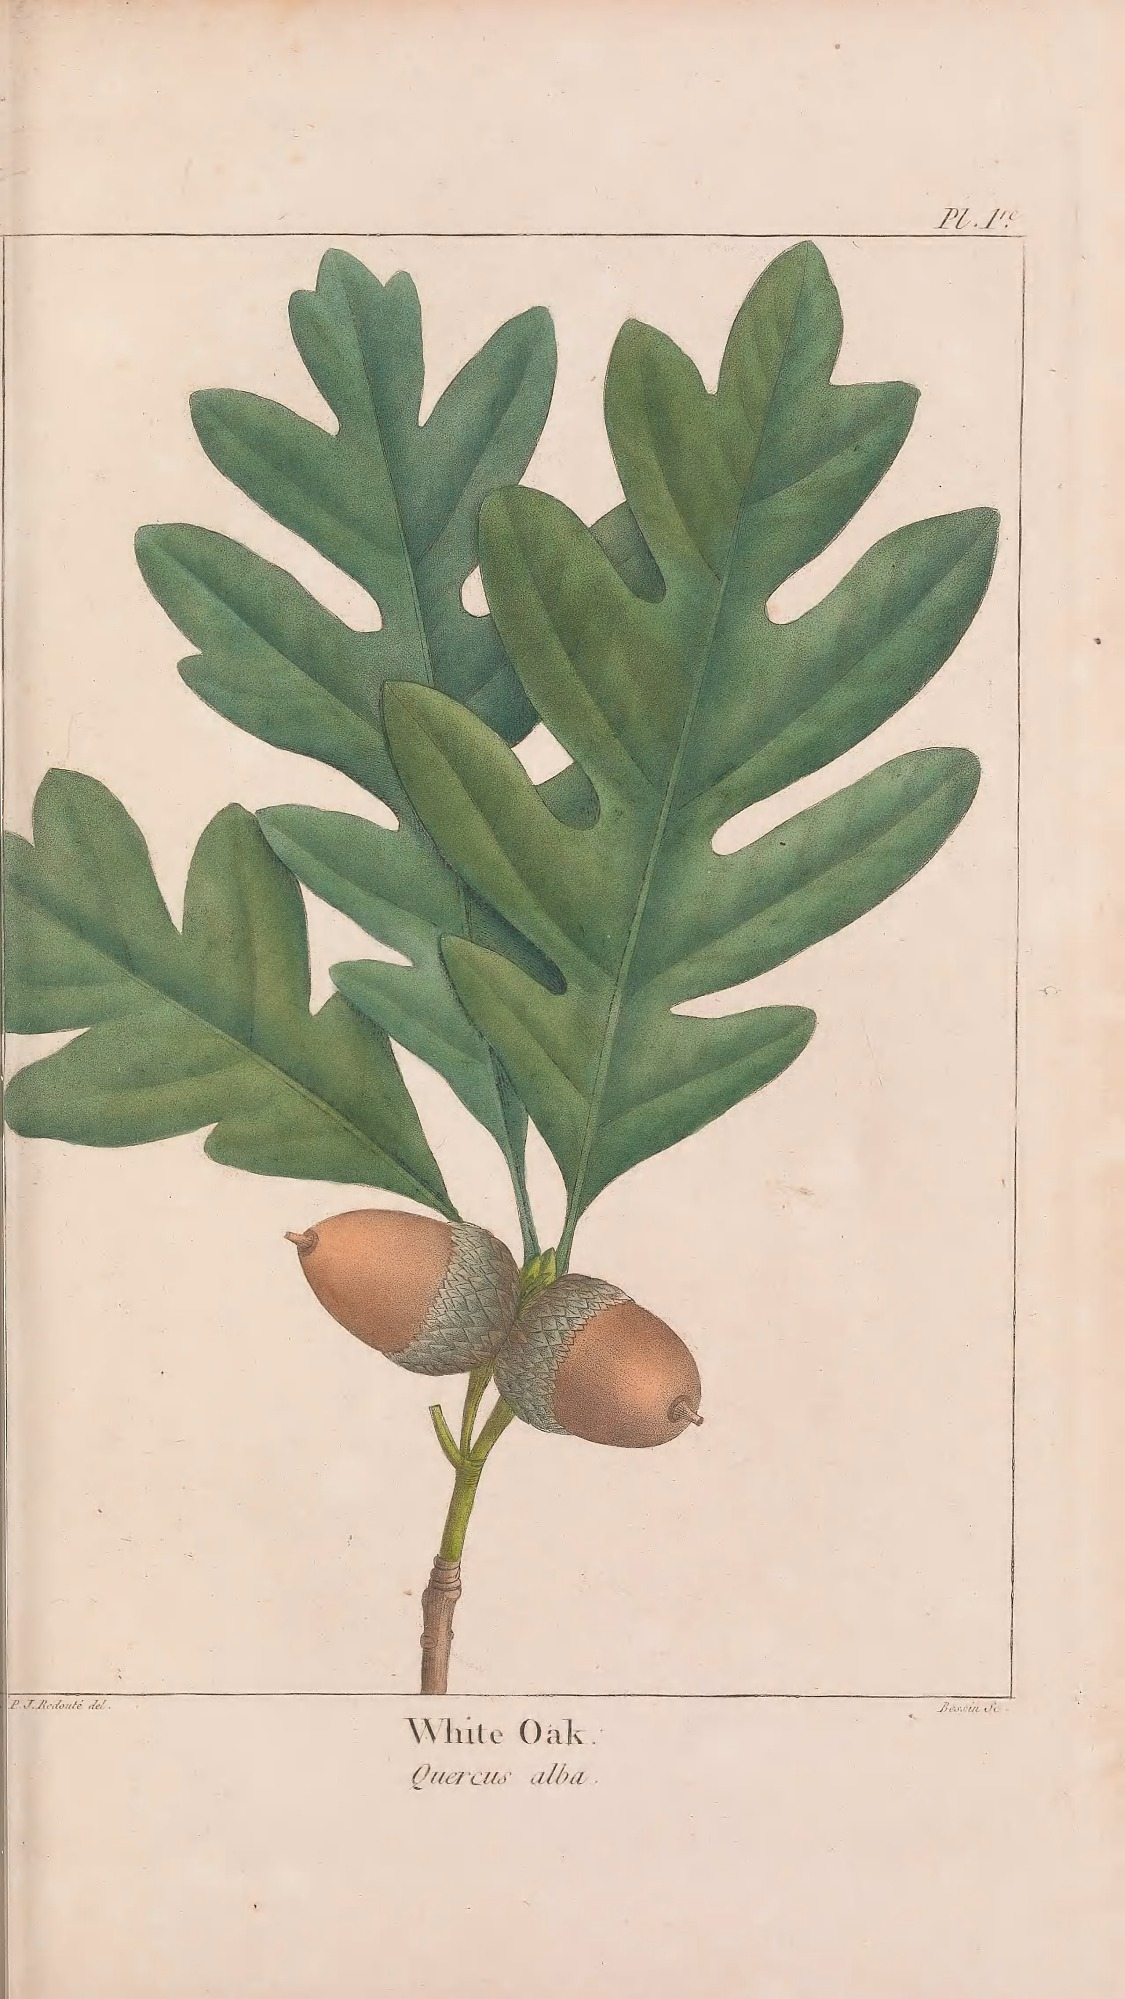 Illustration of leaves and seeds of the white oak